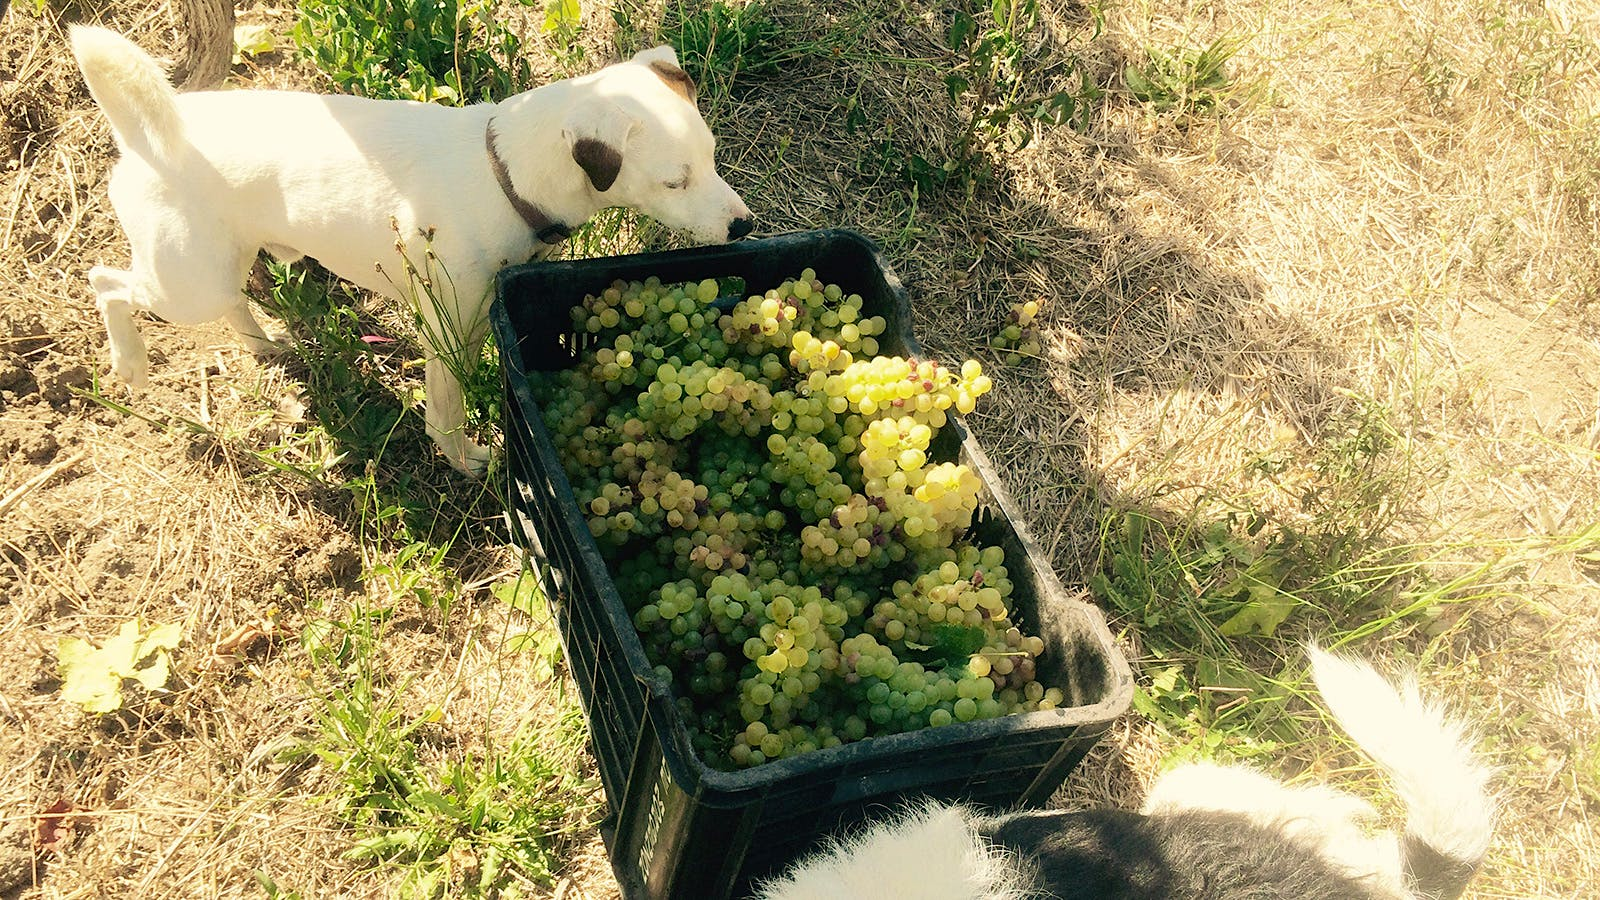 Southern Harvest 2015: South African Wineries Report a Great—if Dry—Year